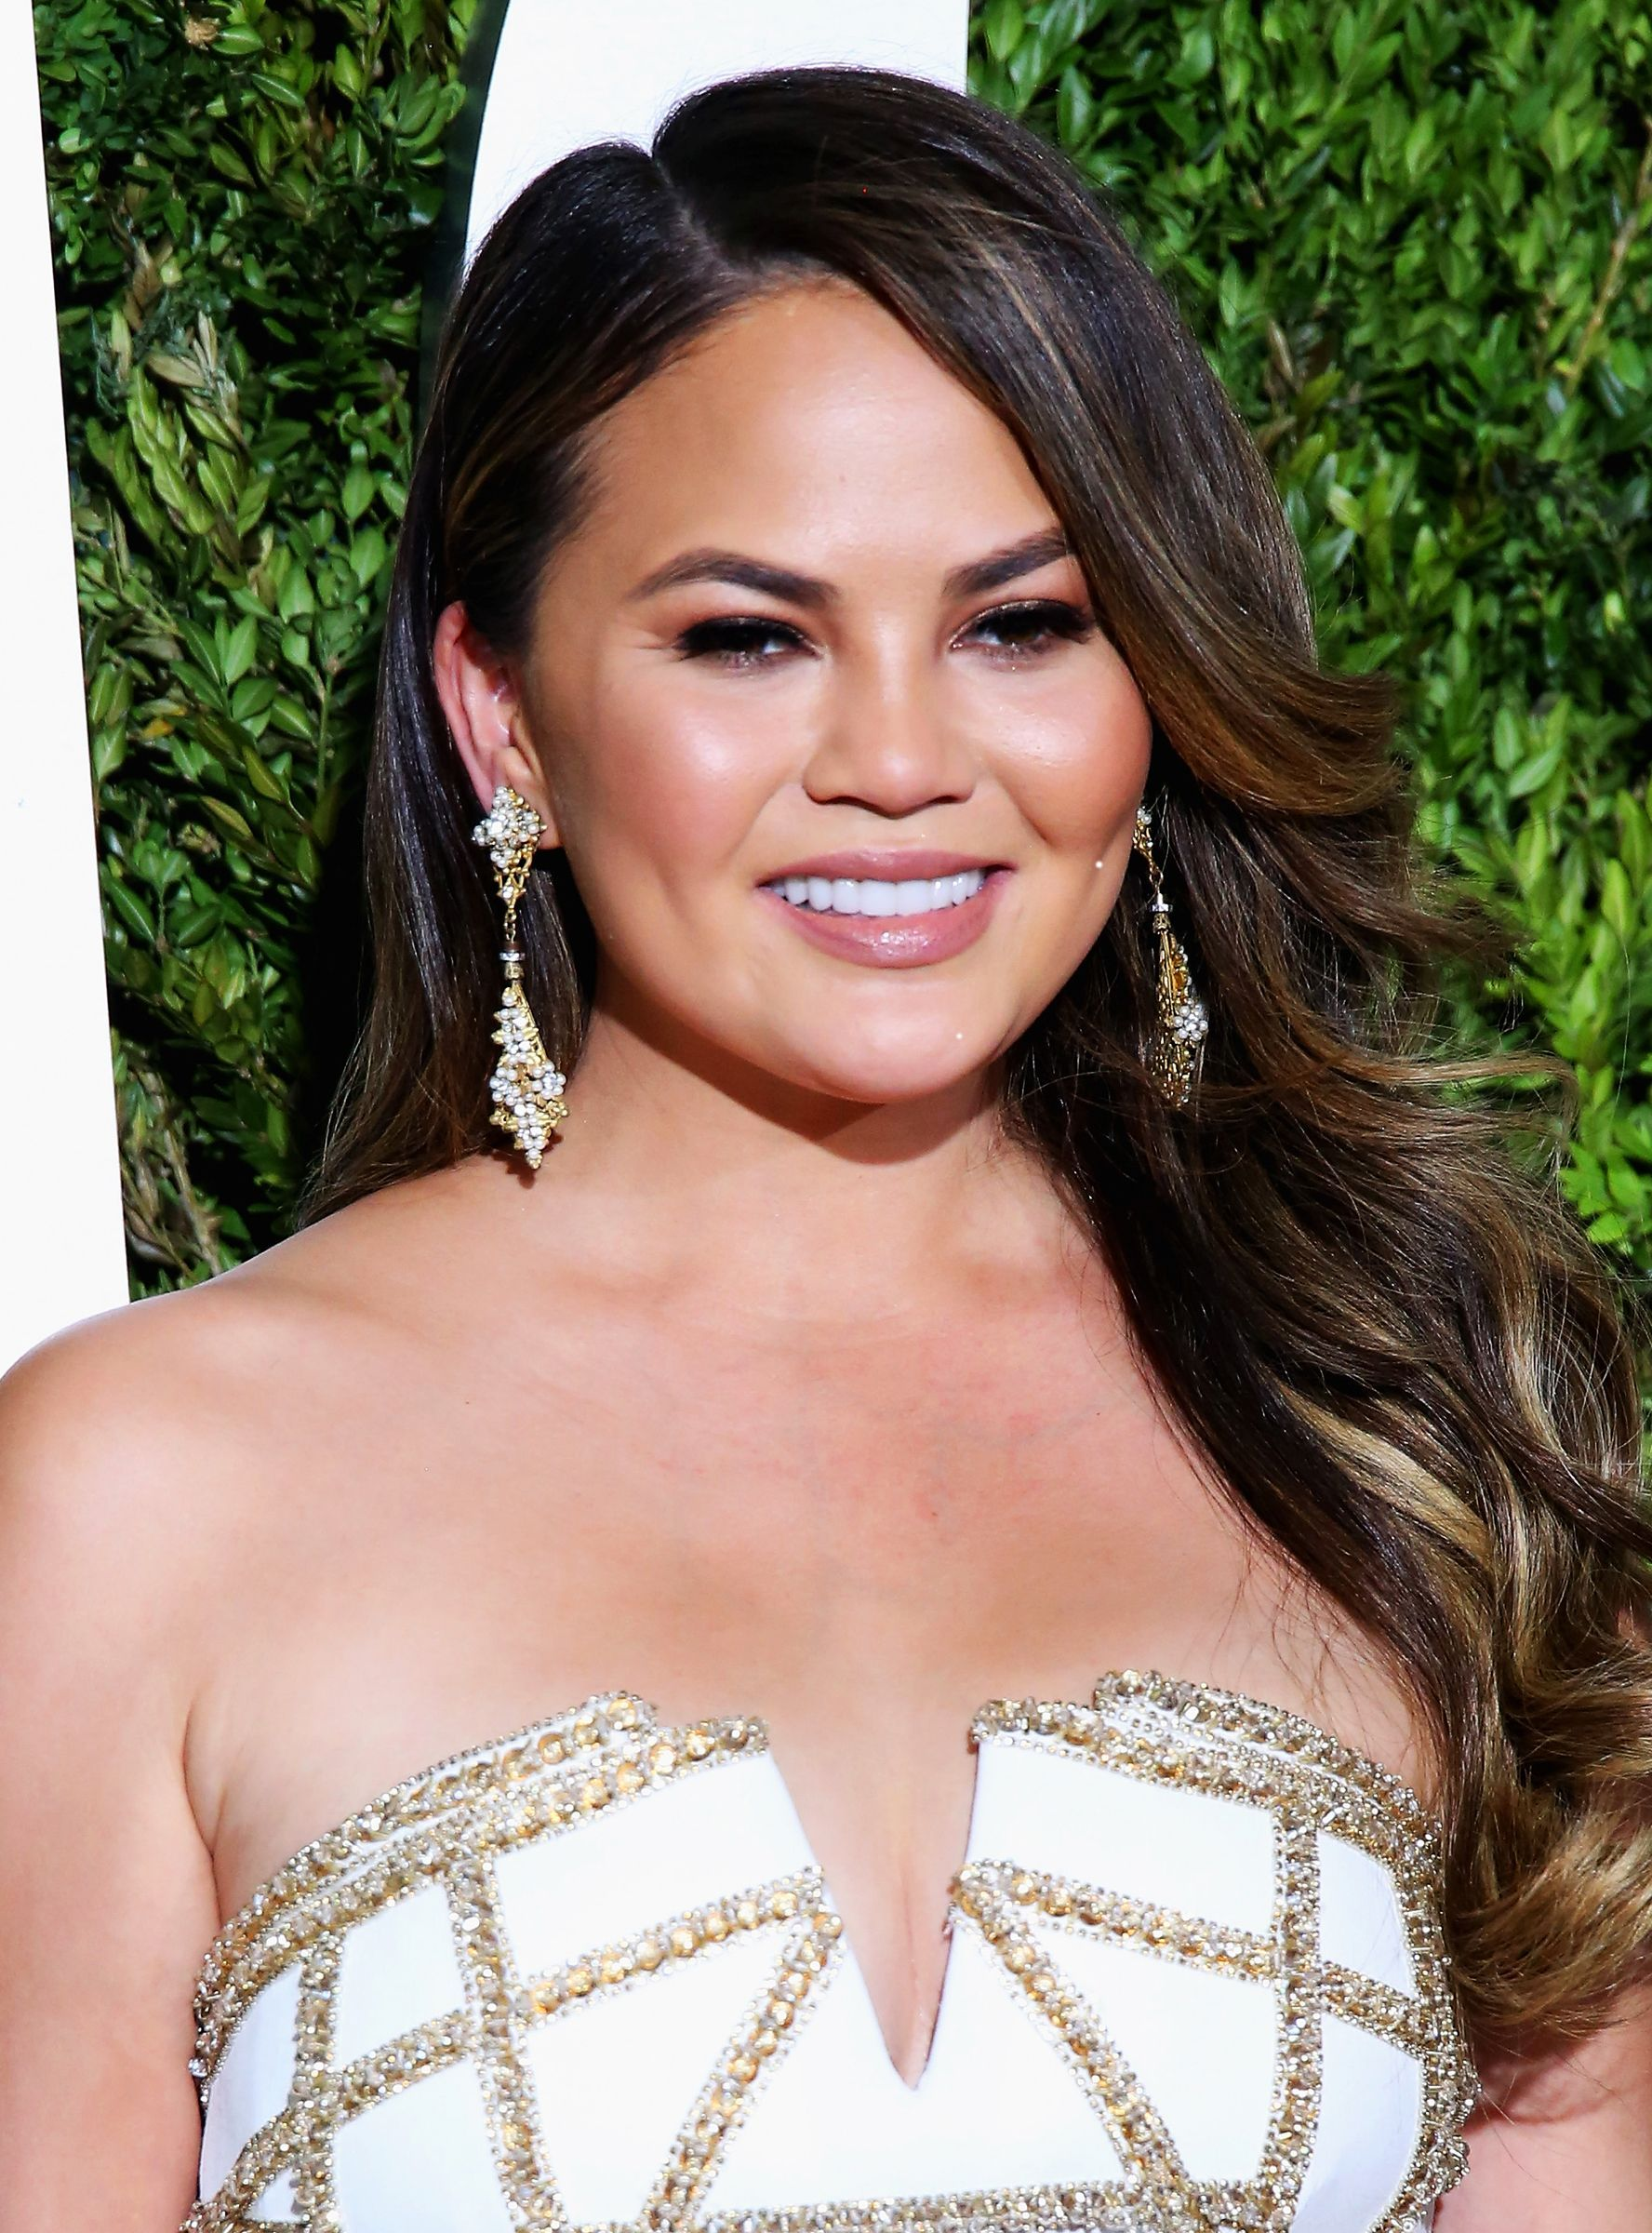 5c56d22ebd1 Chrissy Teigen's Secret On How To Look Alive Without Actually Trying +#refinery29